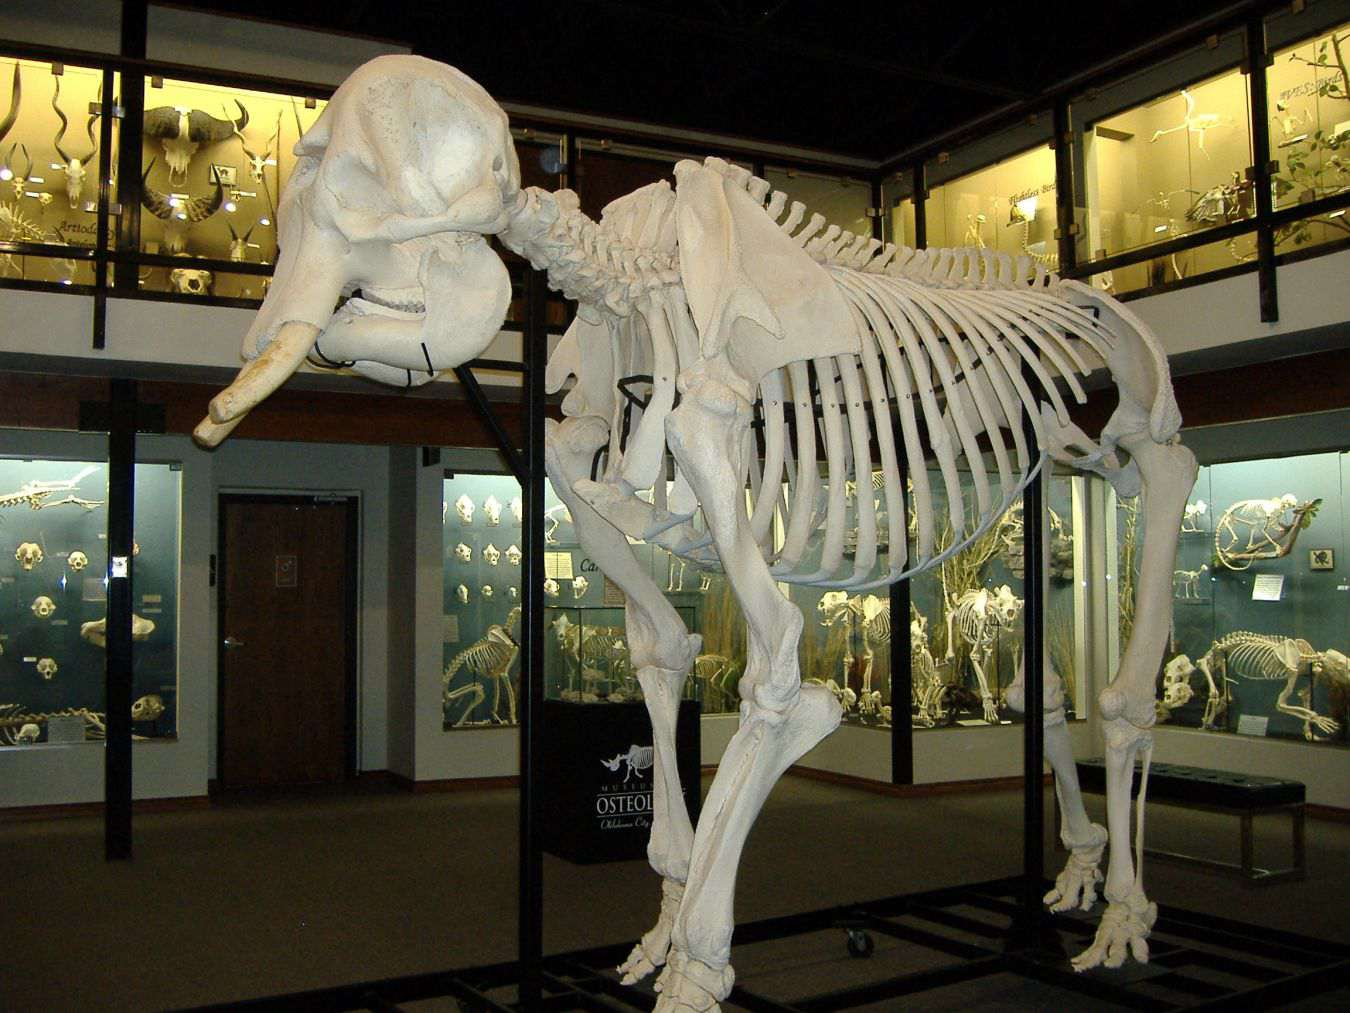 Elephant skeleton on display at the Museum of osteology